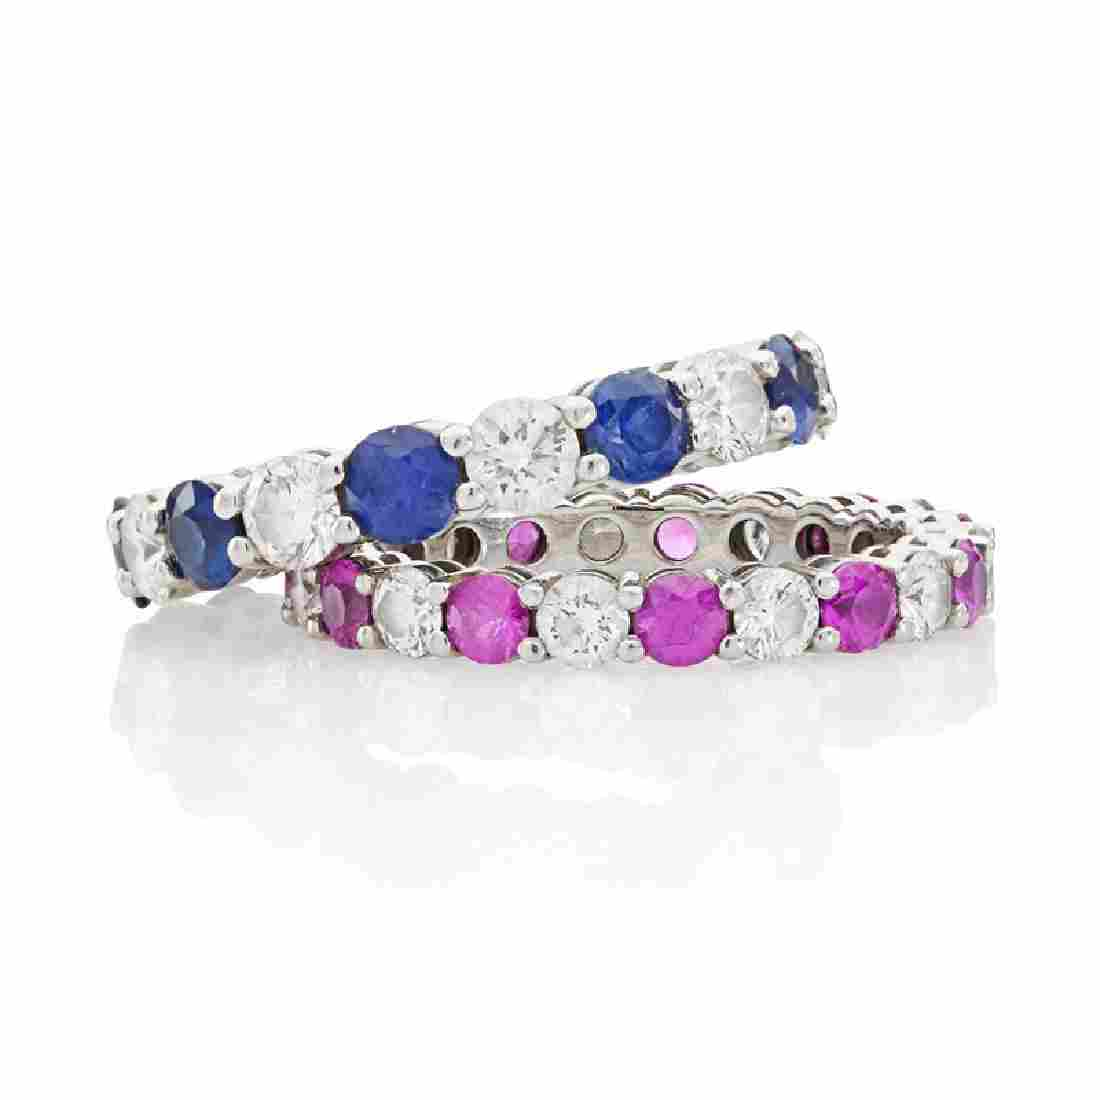 """TIFFANY & CO. """"EMBRACE"""" SAPPHIRE ETERNITY BAND RINGS"""